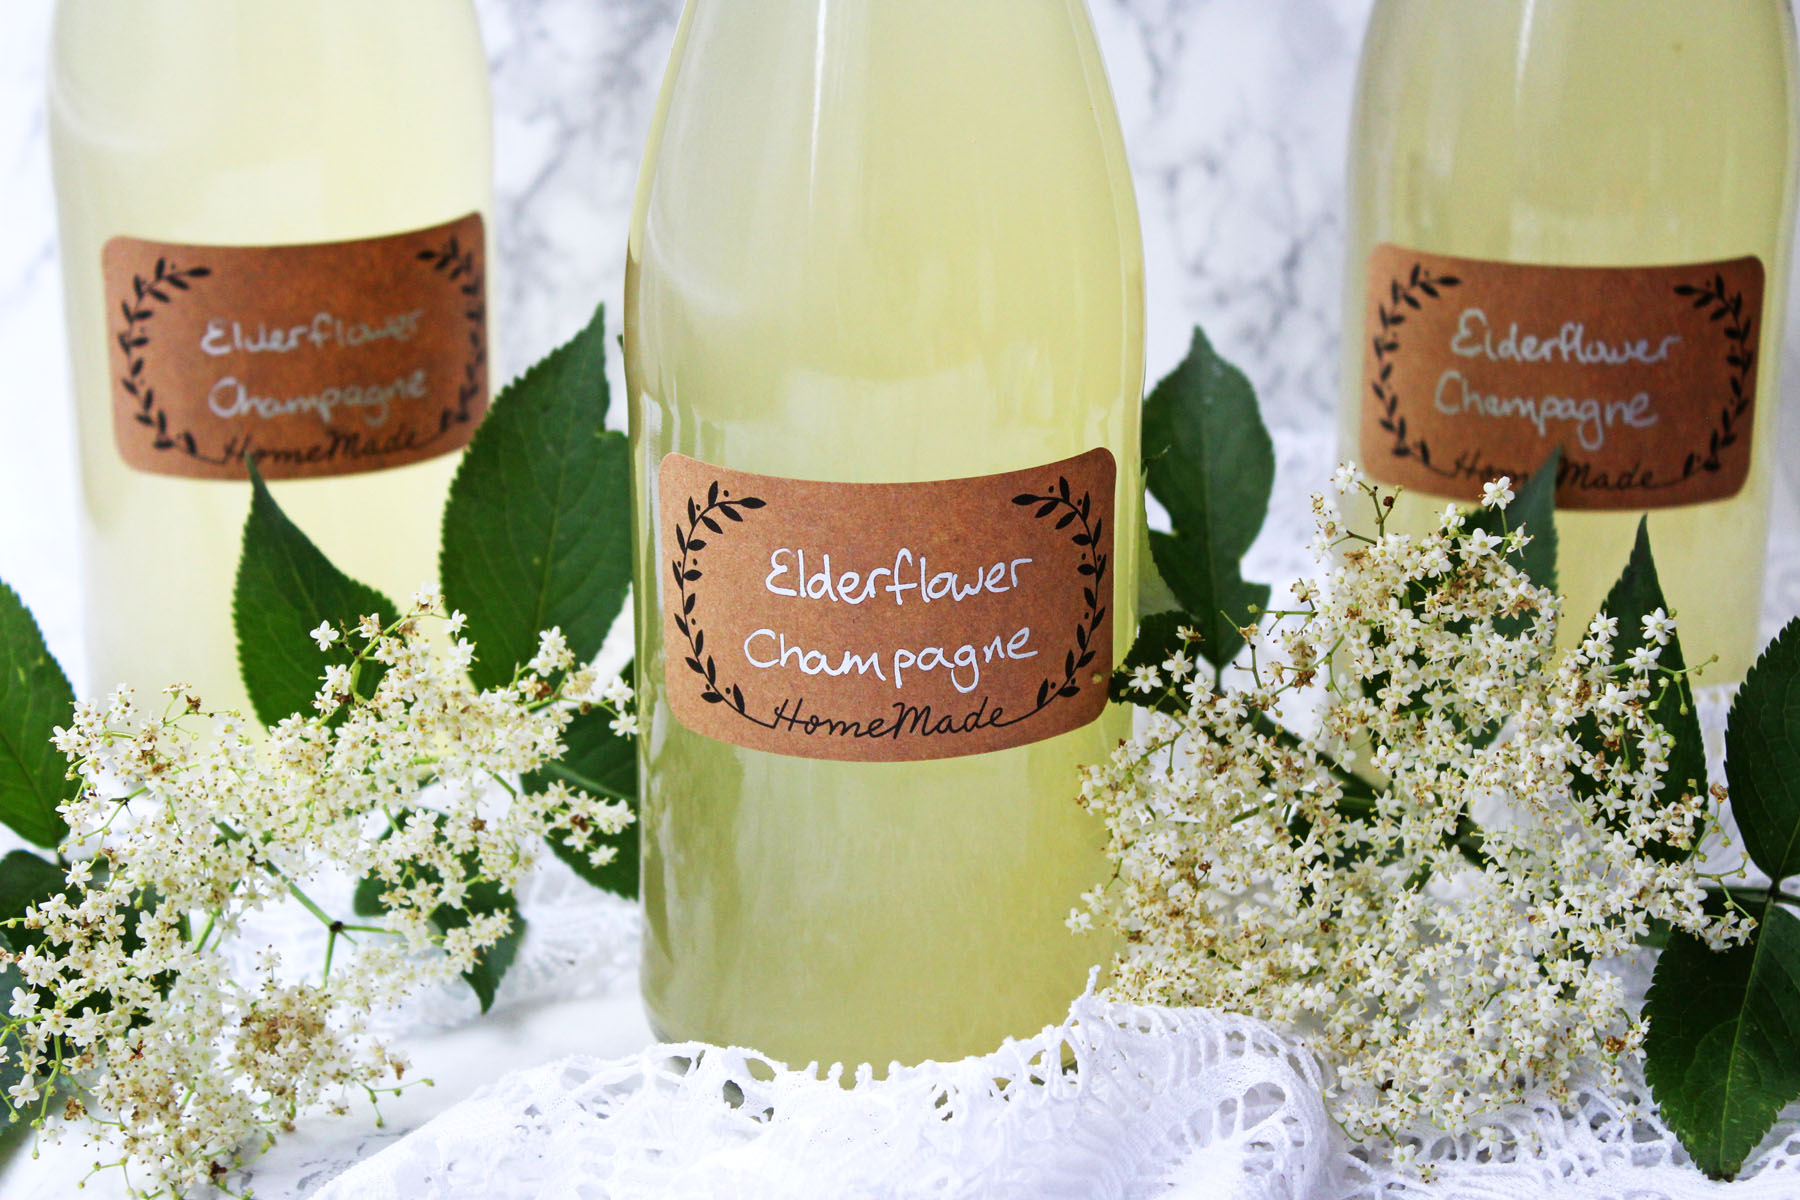 Elderflower Champagne